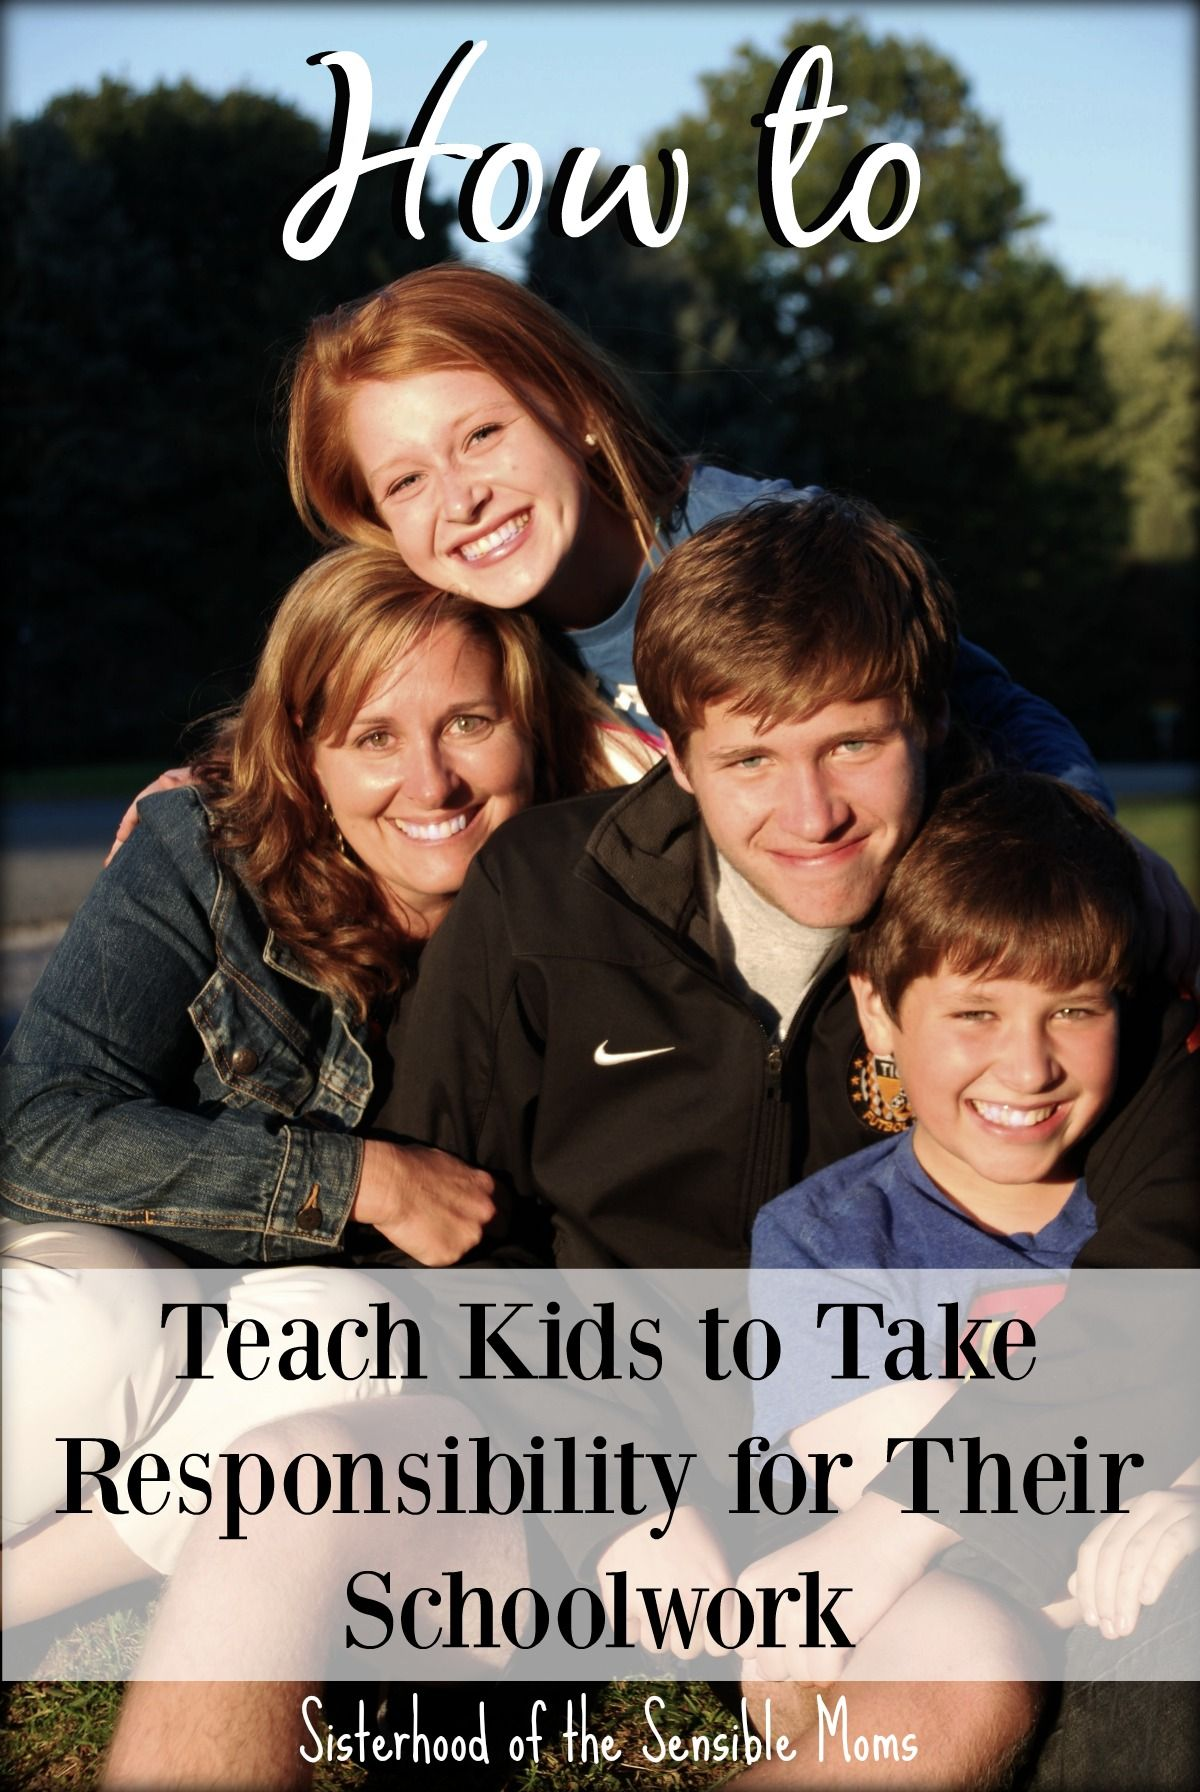 Teach Kids To Take Responsibility For Their Schoolwork